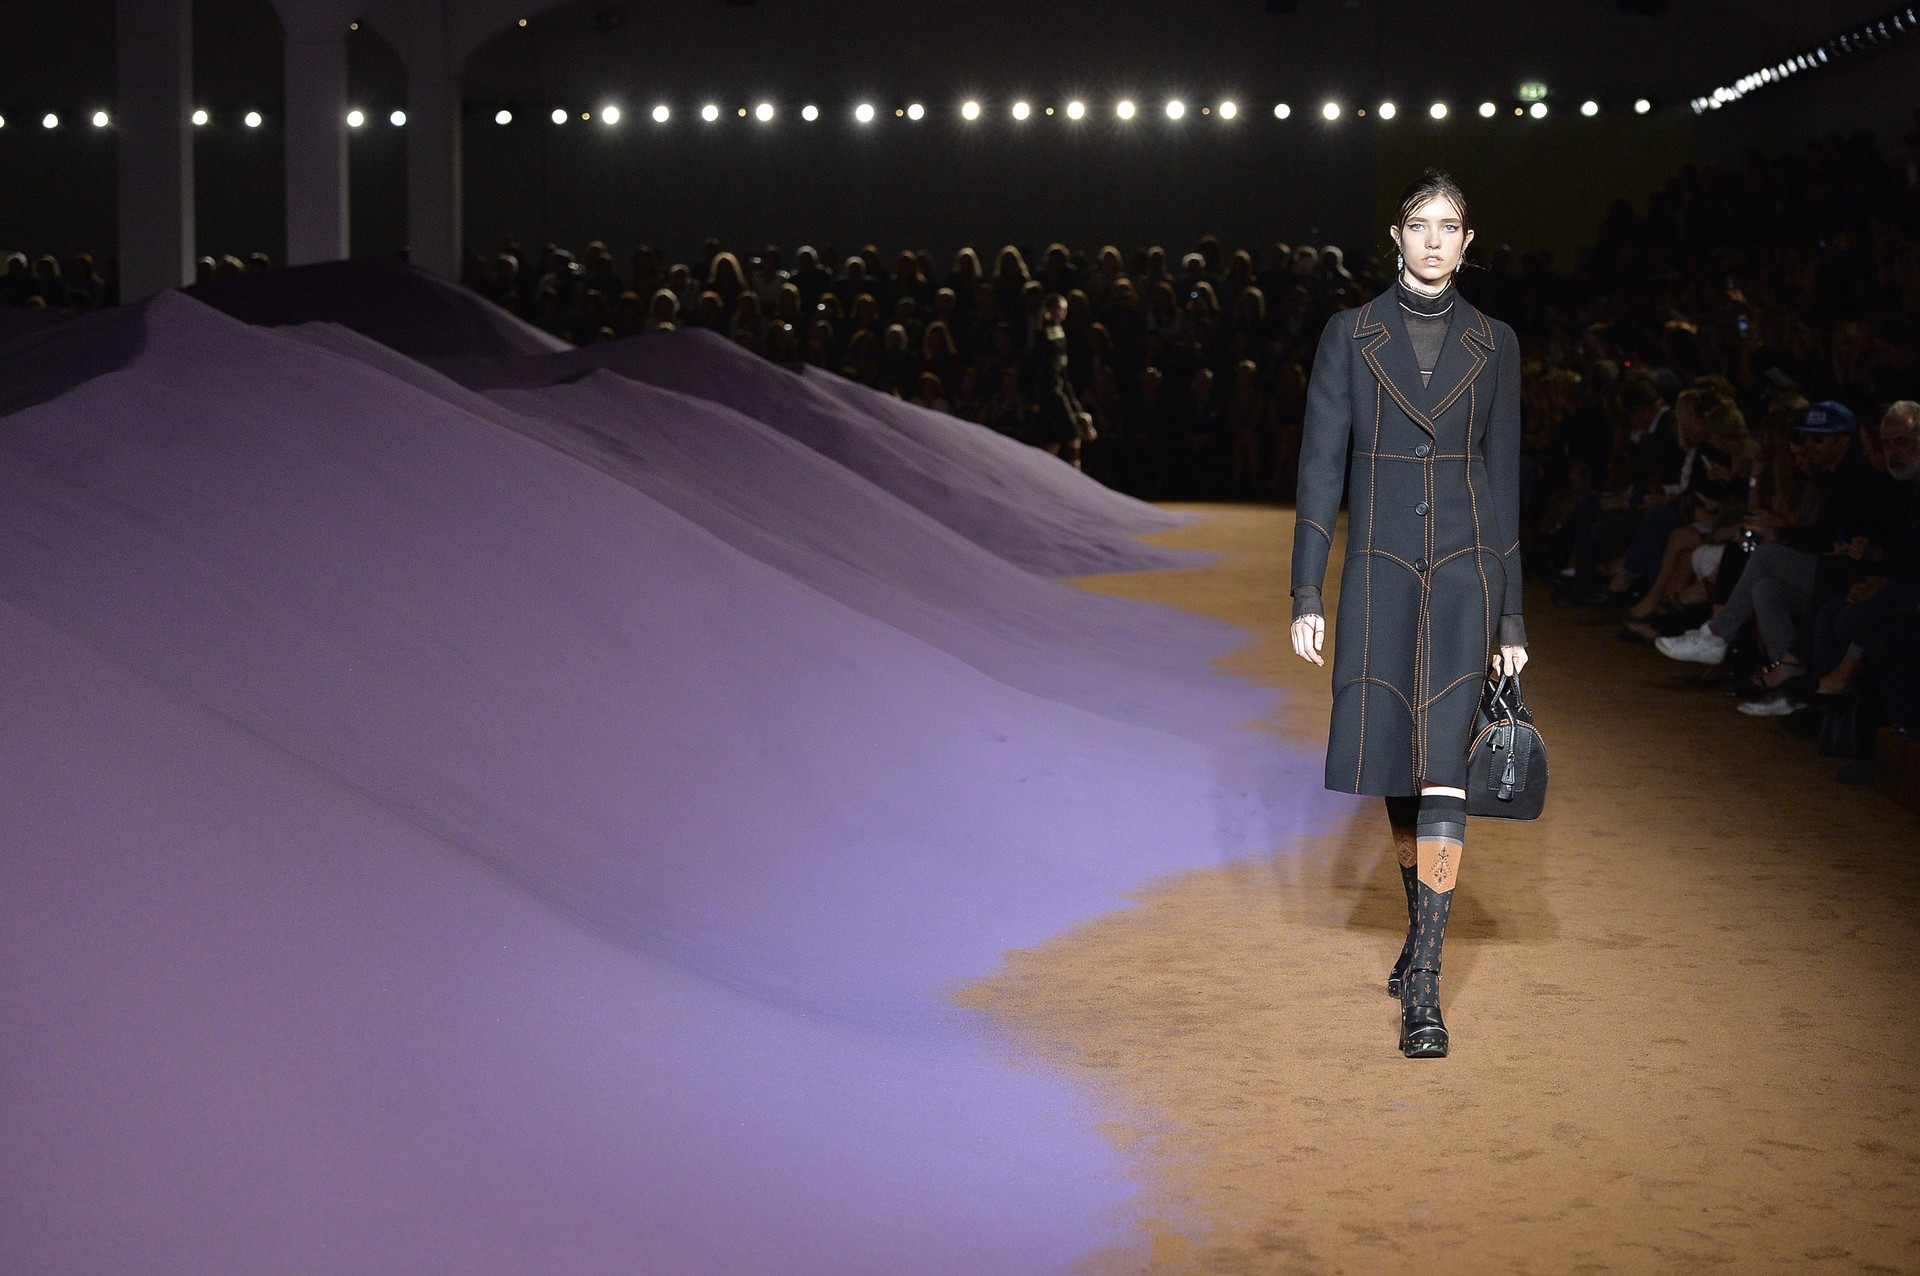 O lindo cenário do desfile da Prada (Foto: Getty Images)